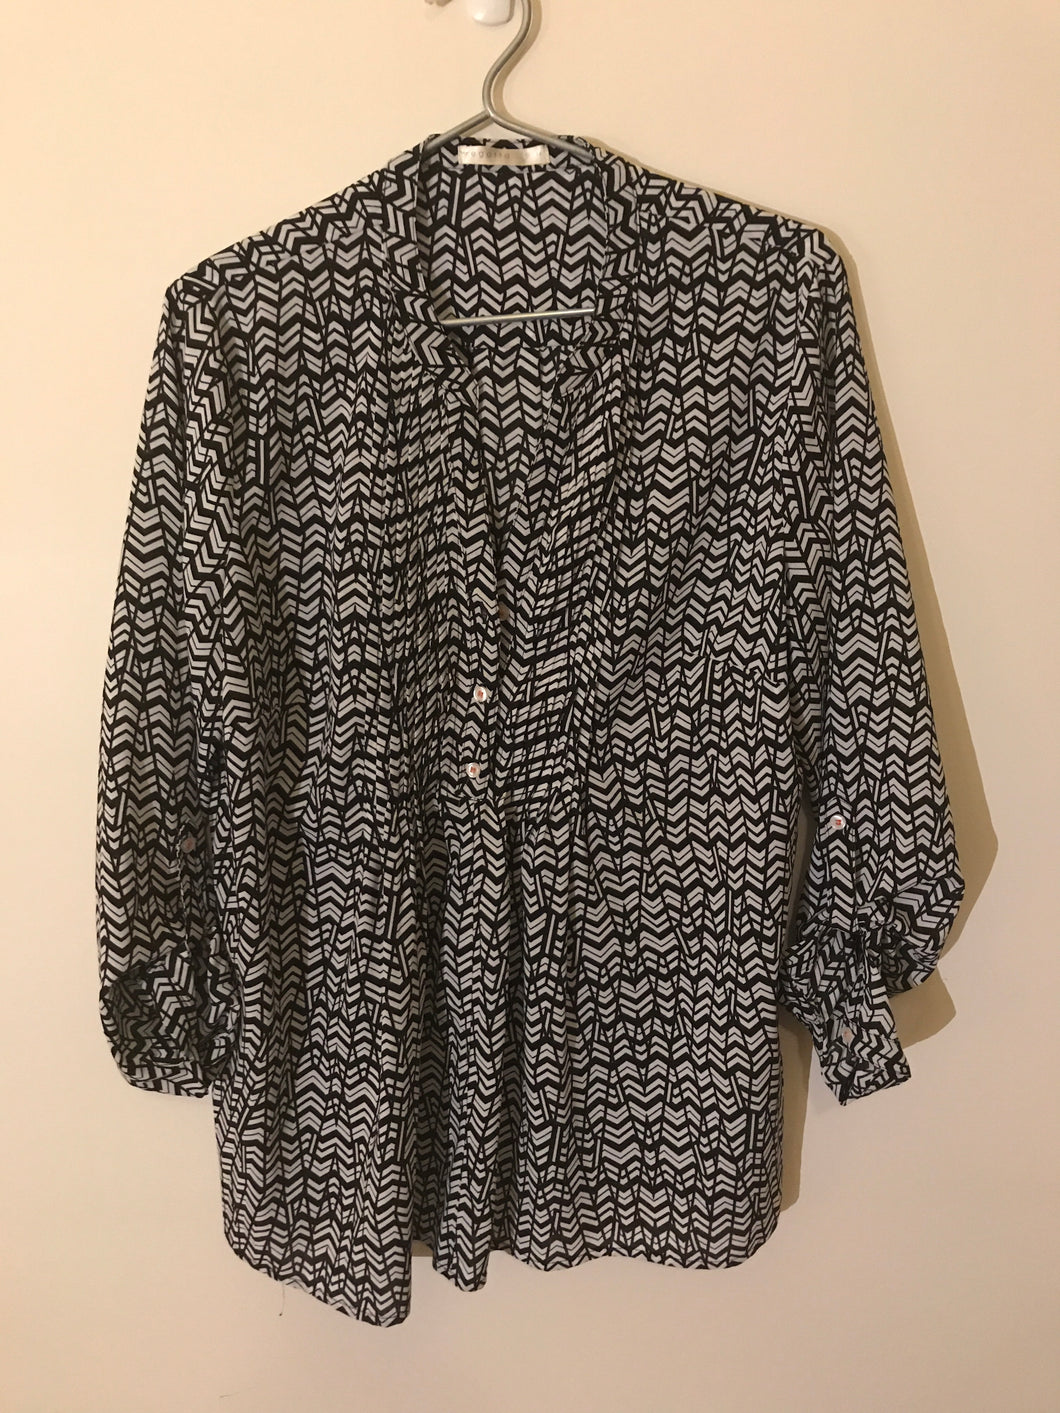 Regatta grey/black long sleeve blouse Size 14